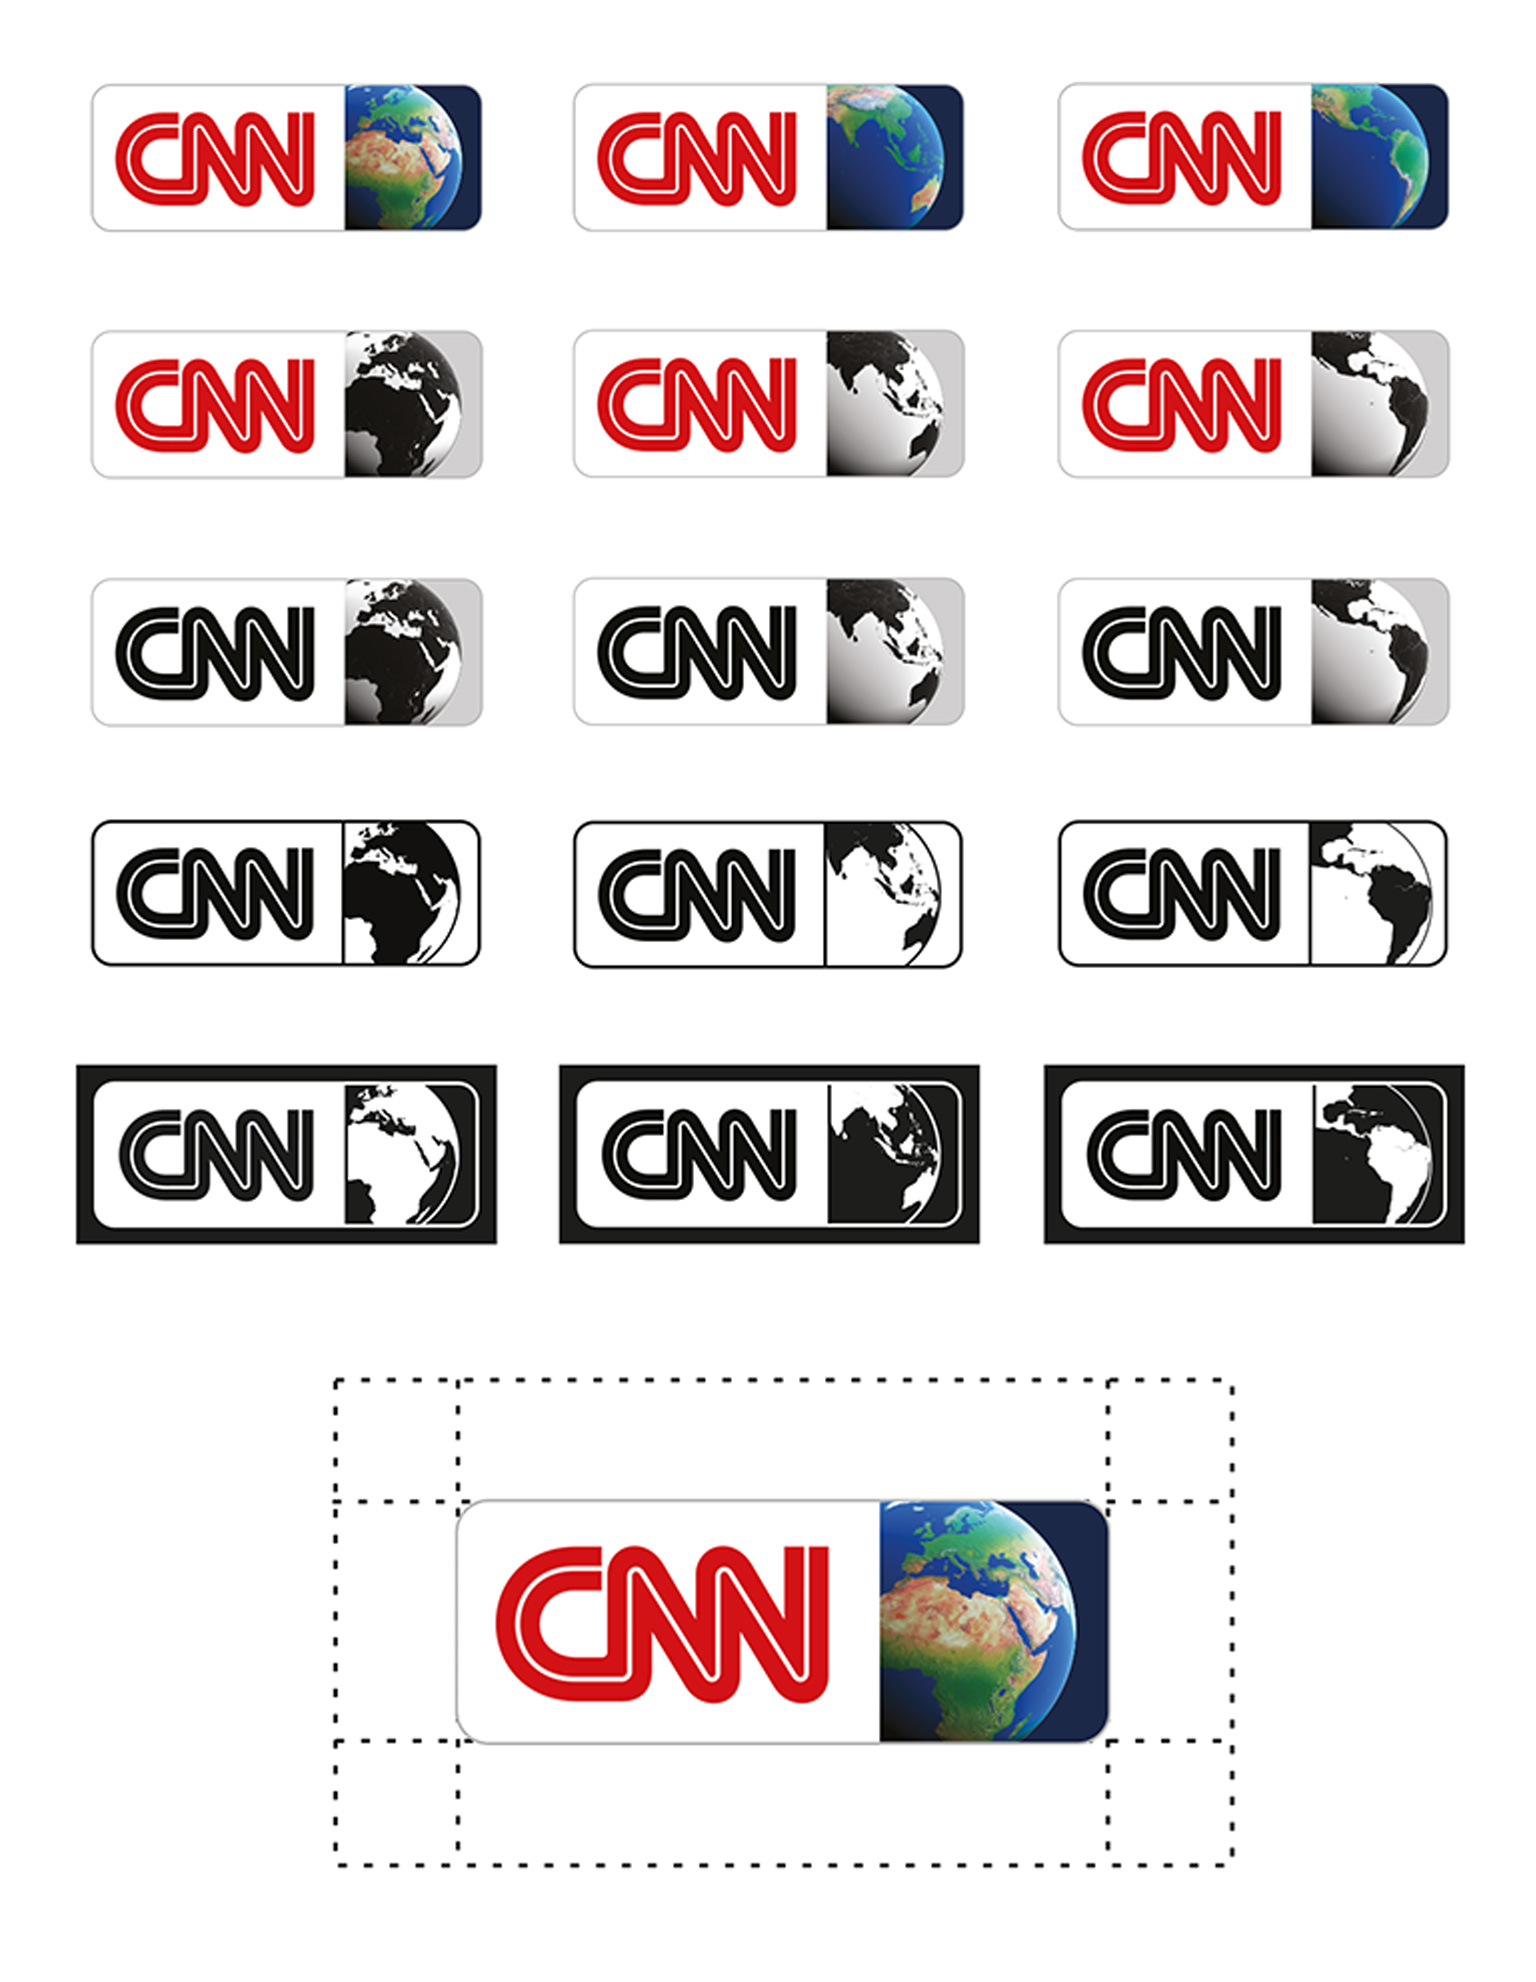 CNN Further Logo Variations